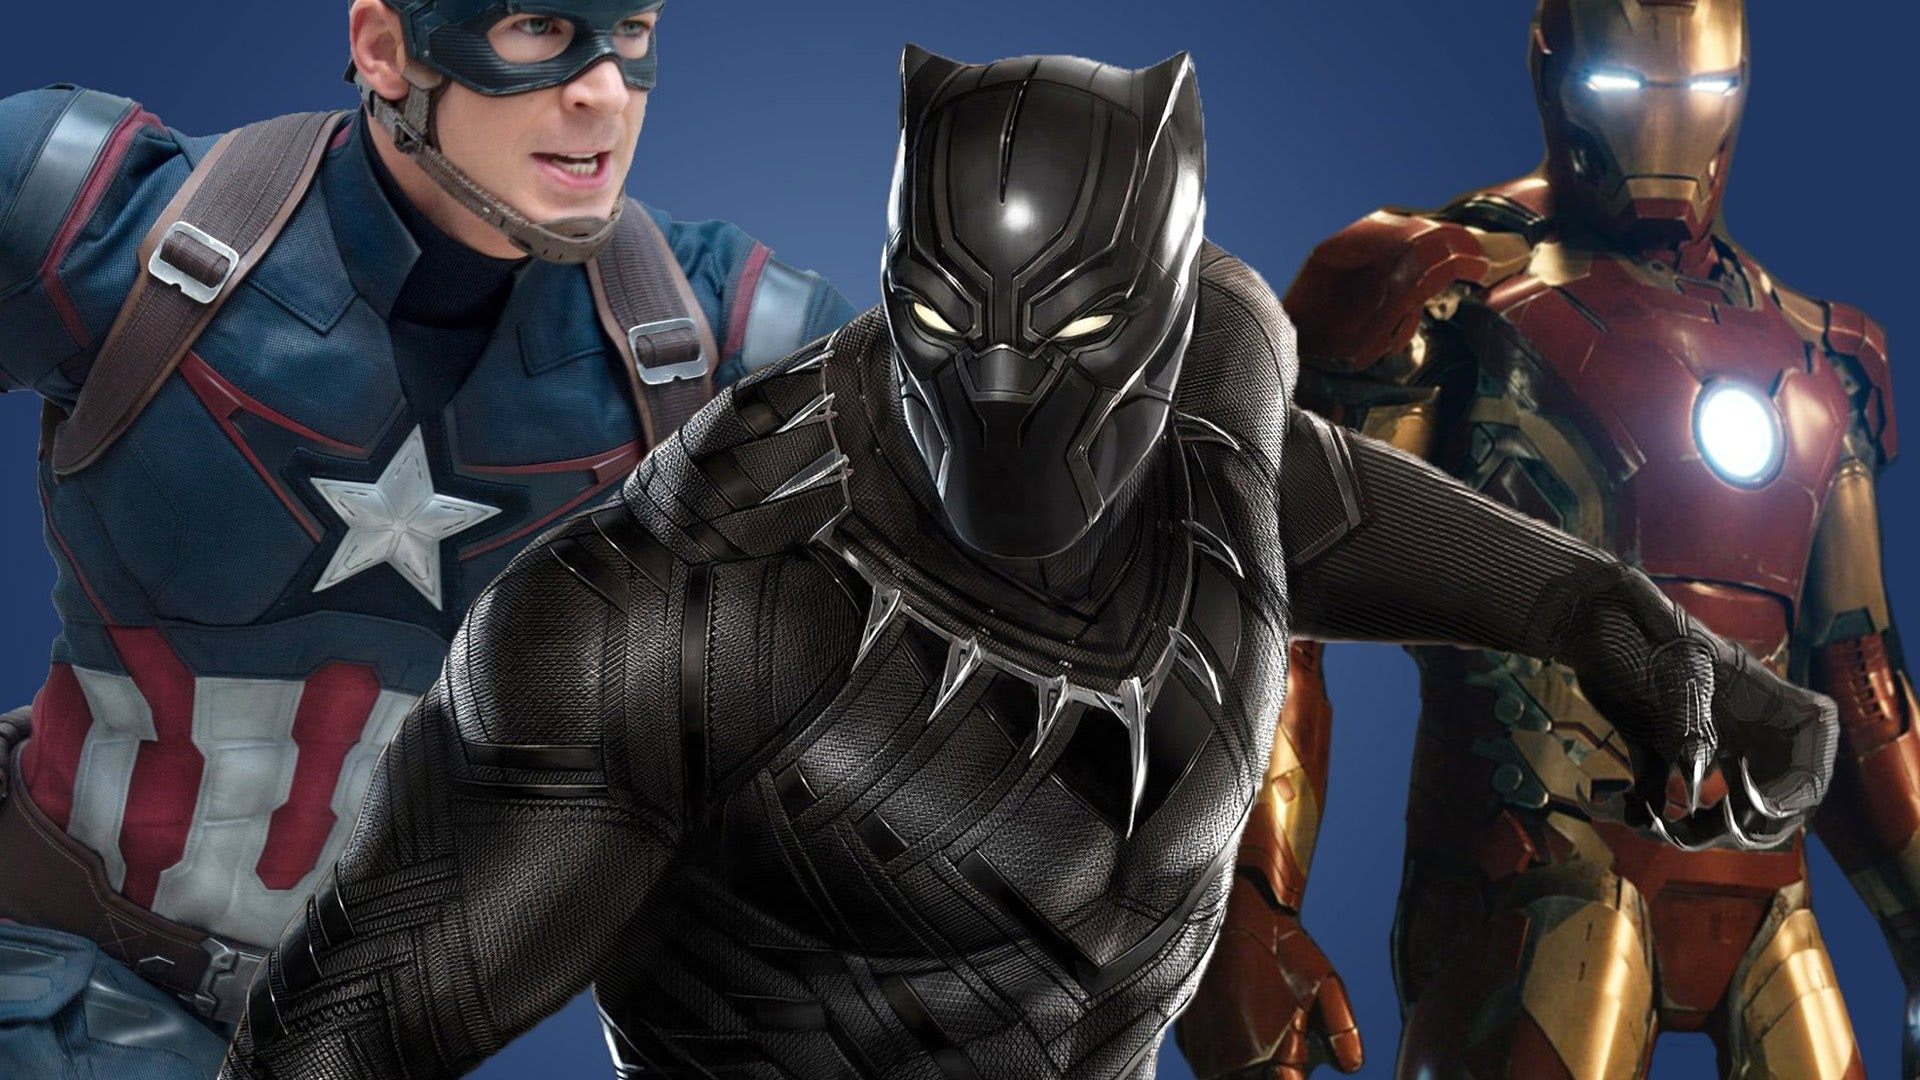 Ironman-captain-america-civil-war-black-panther-wallpaper-hd-1080p-desktop